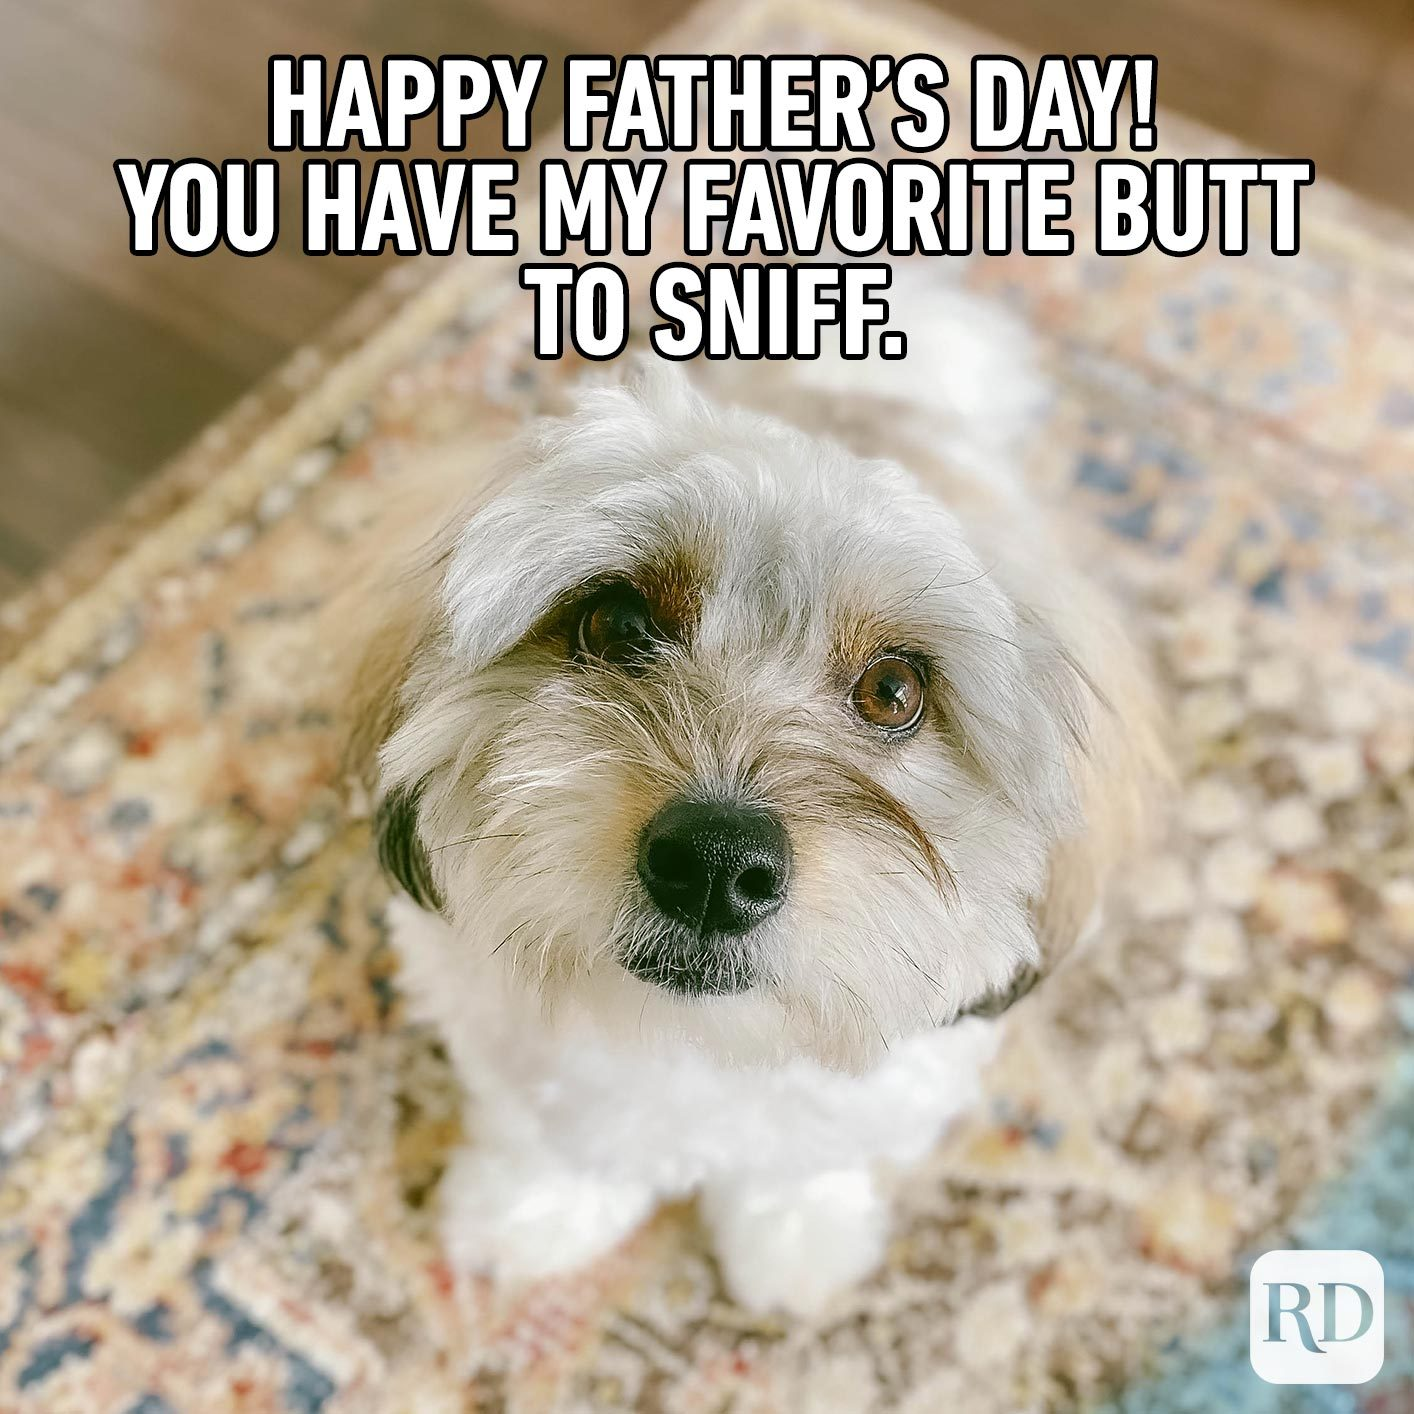 Scruffy dog. Meme text: Happy Father's Day! You have my favorite butt to sniff.